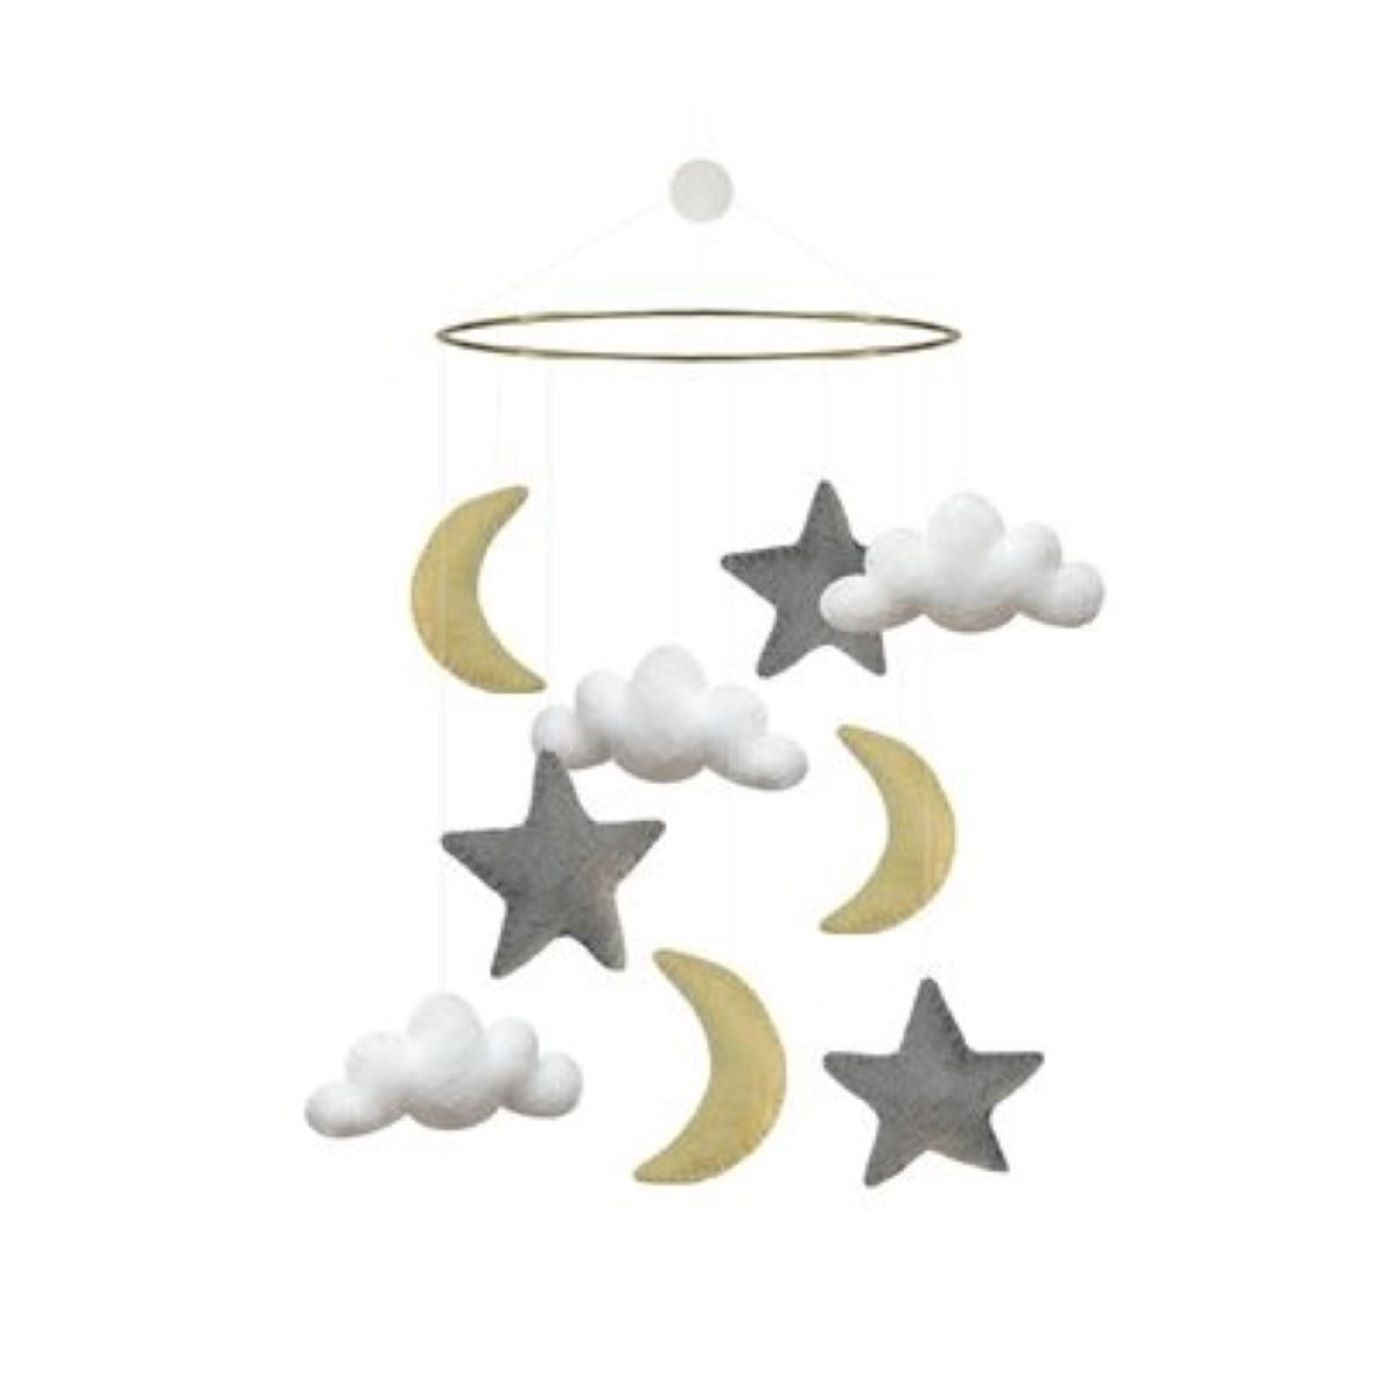 Gamcha Cot Mobile in Moon/Cloud/Star Mix